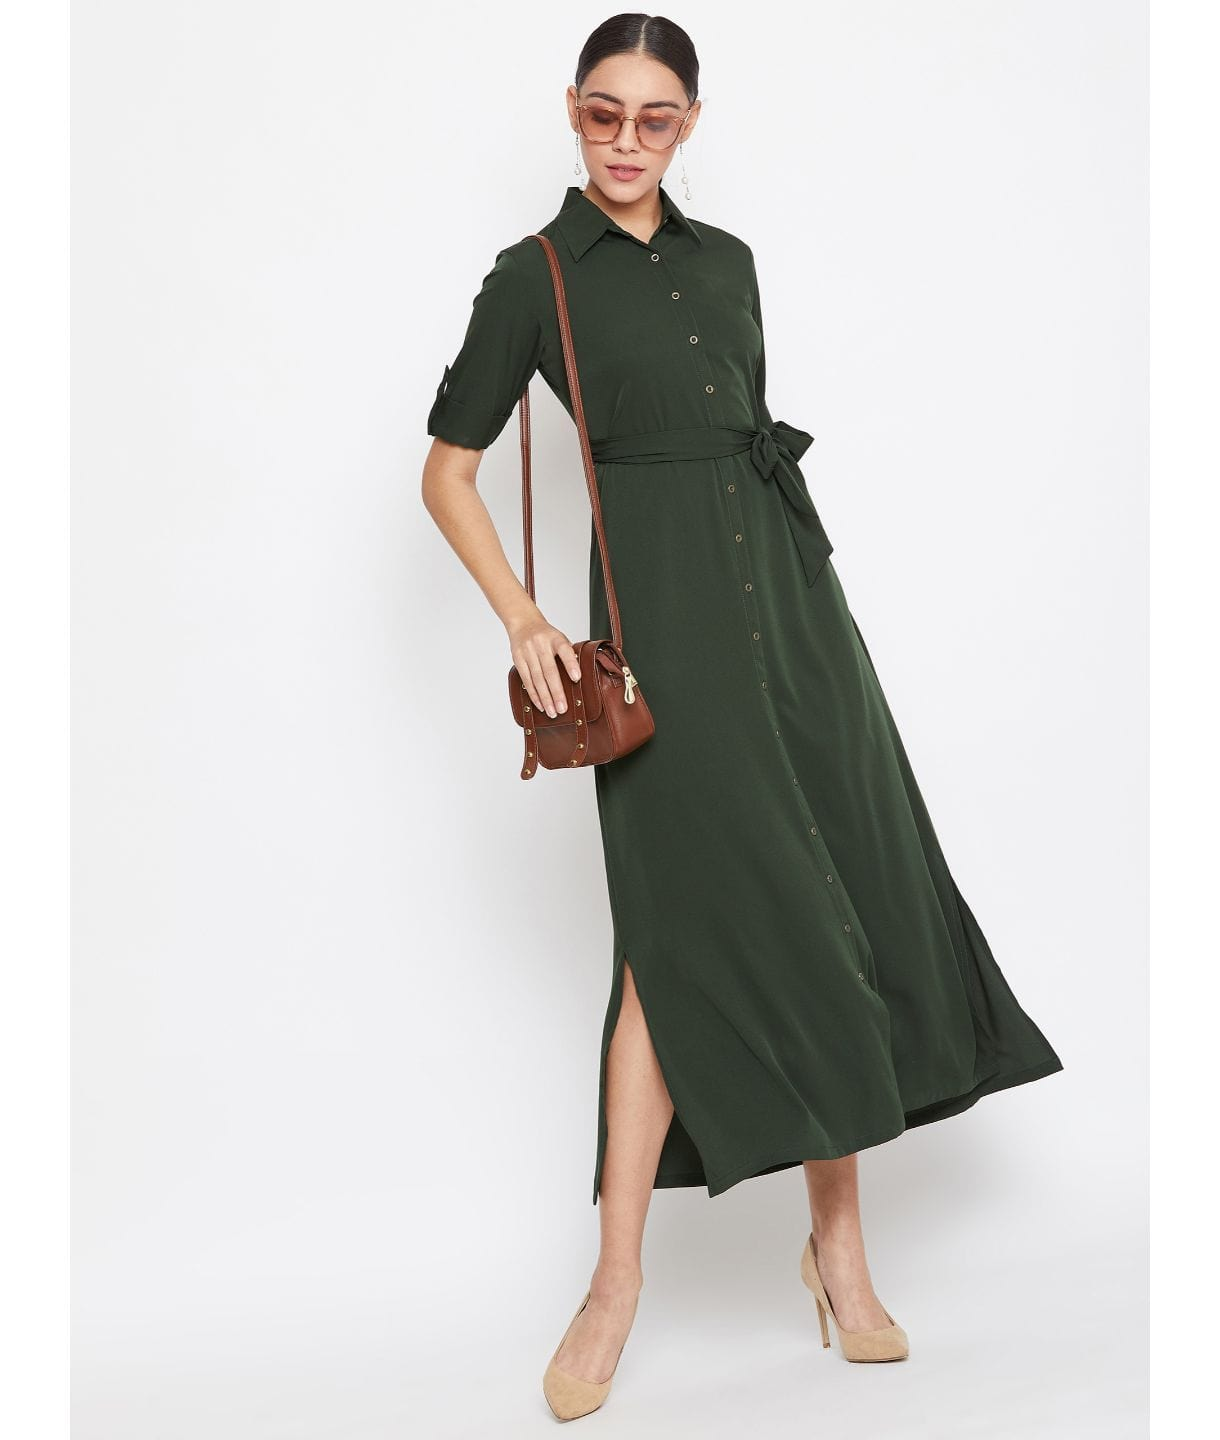 Uptownie Army Green Solid Crepe Collar Buttoned Down Shirt Maxi Dress